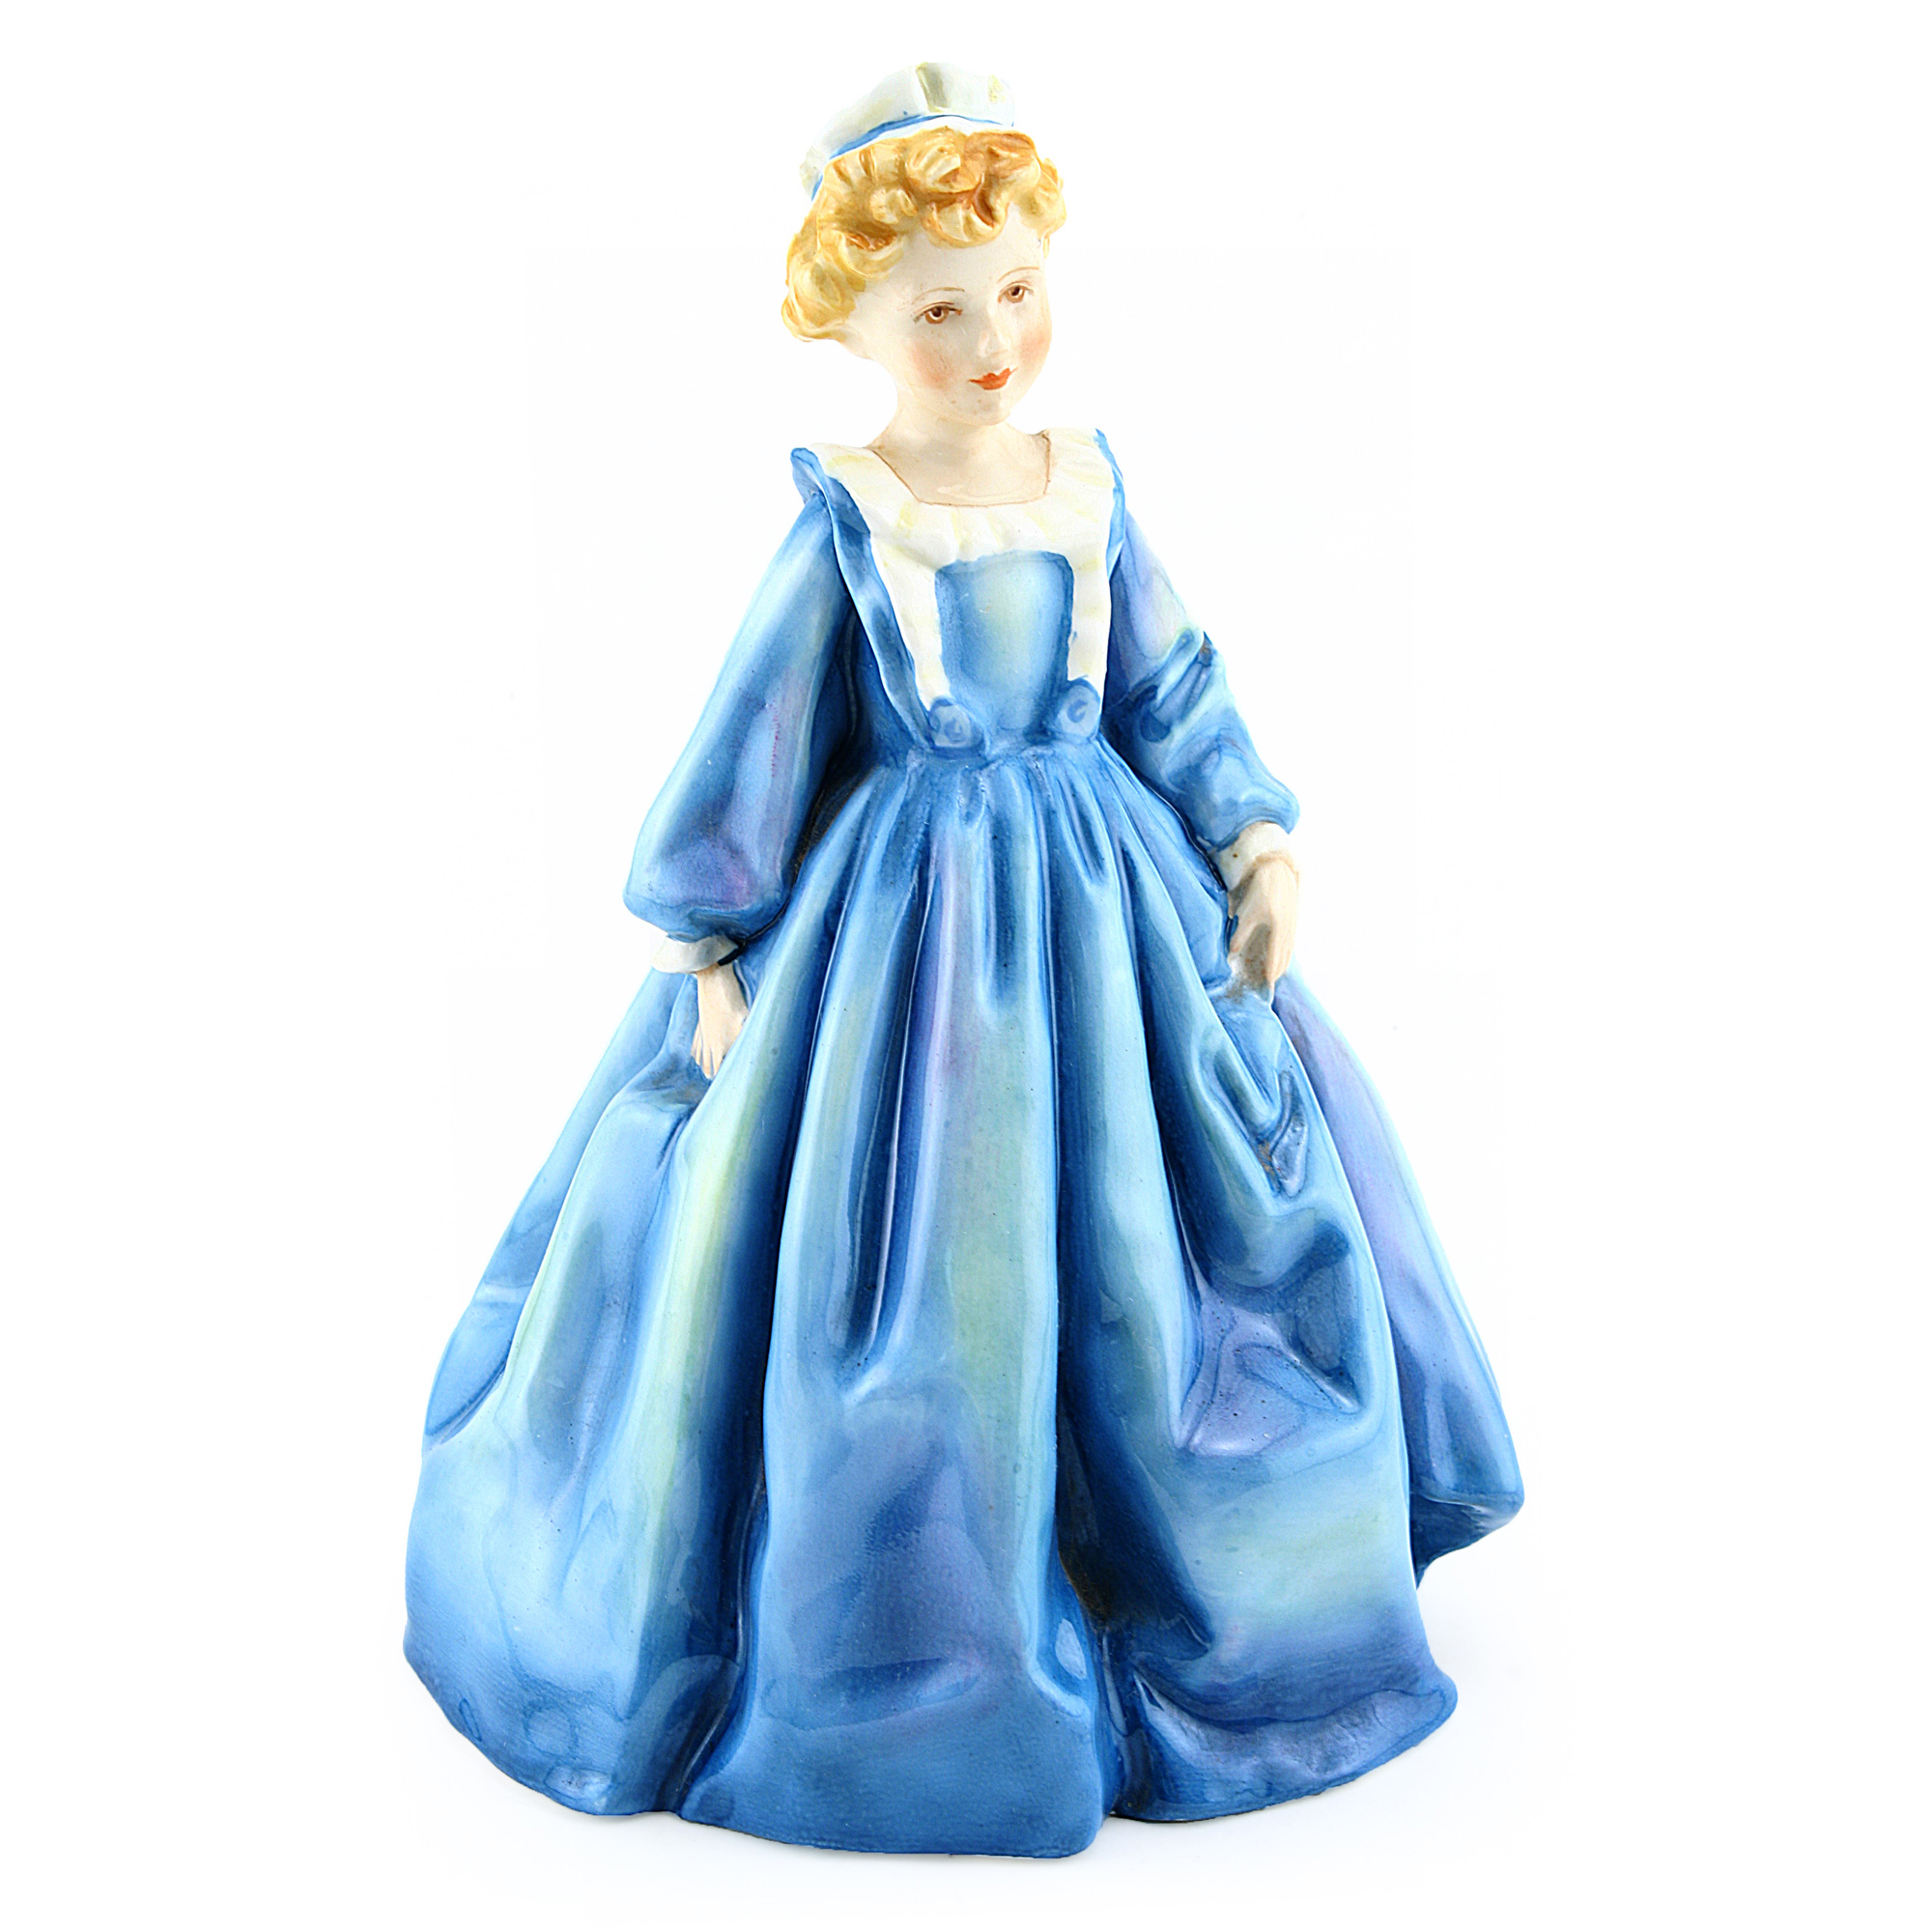 Grandmothers Dress Blue RW3081BL_G - Royal Worcester Figurine